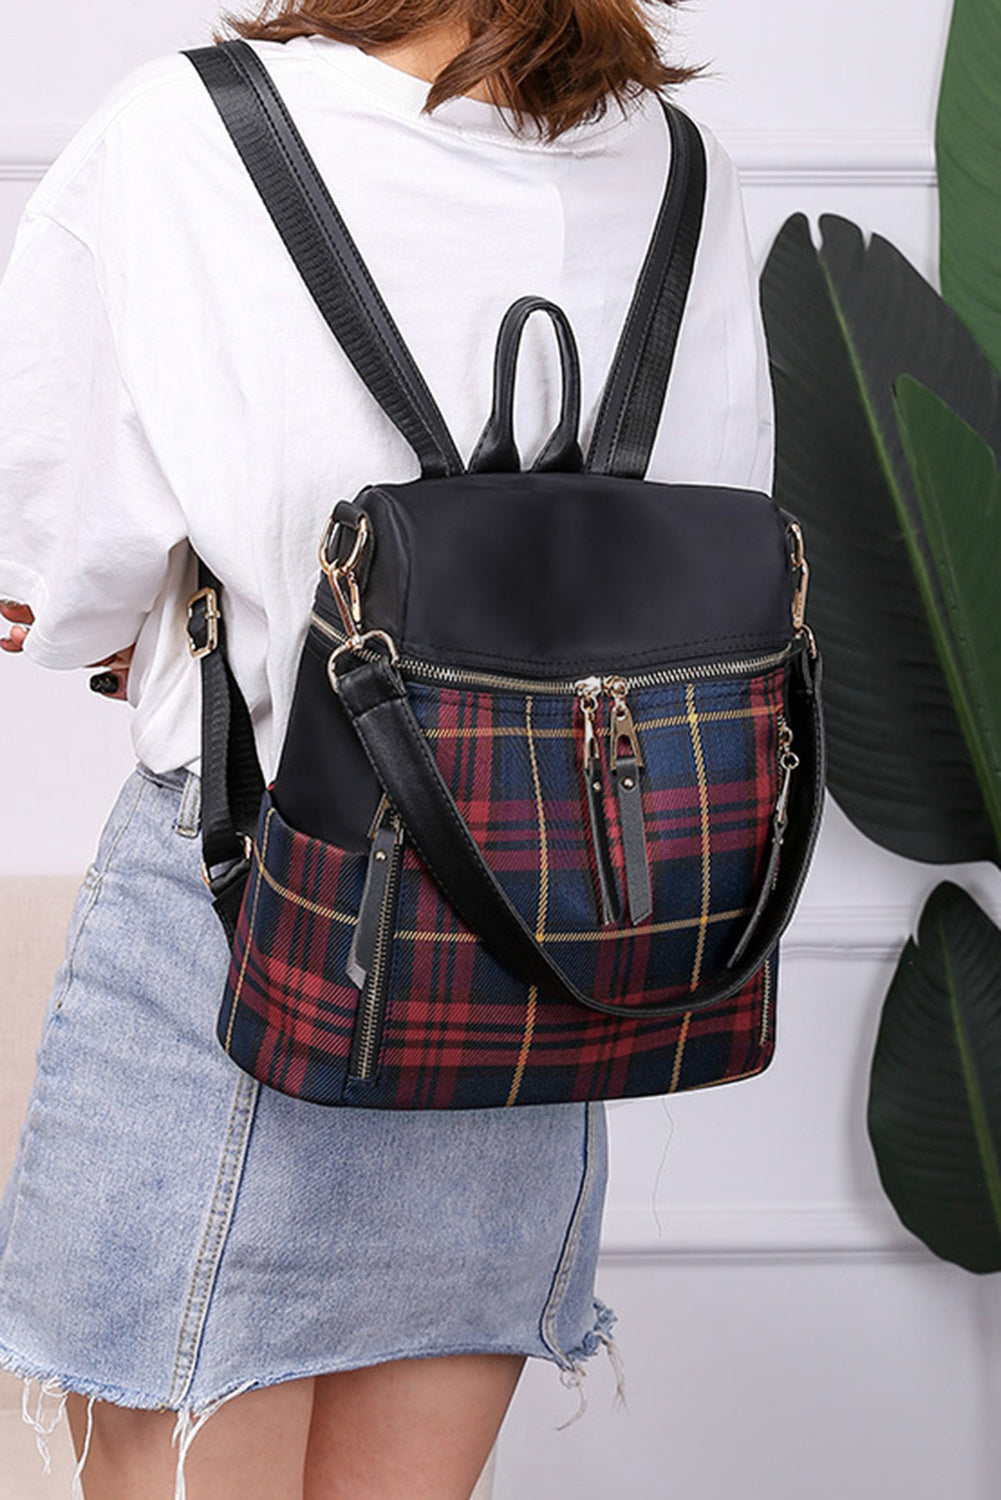 Red Plaid Backpack Handbag Bags Discount Designer Fashion Clothes Shoes Bags Women Men Kids Children Black Owned Business